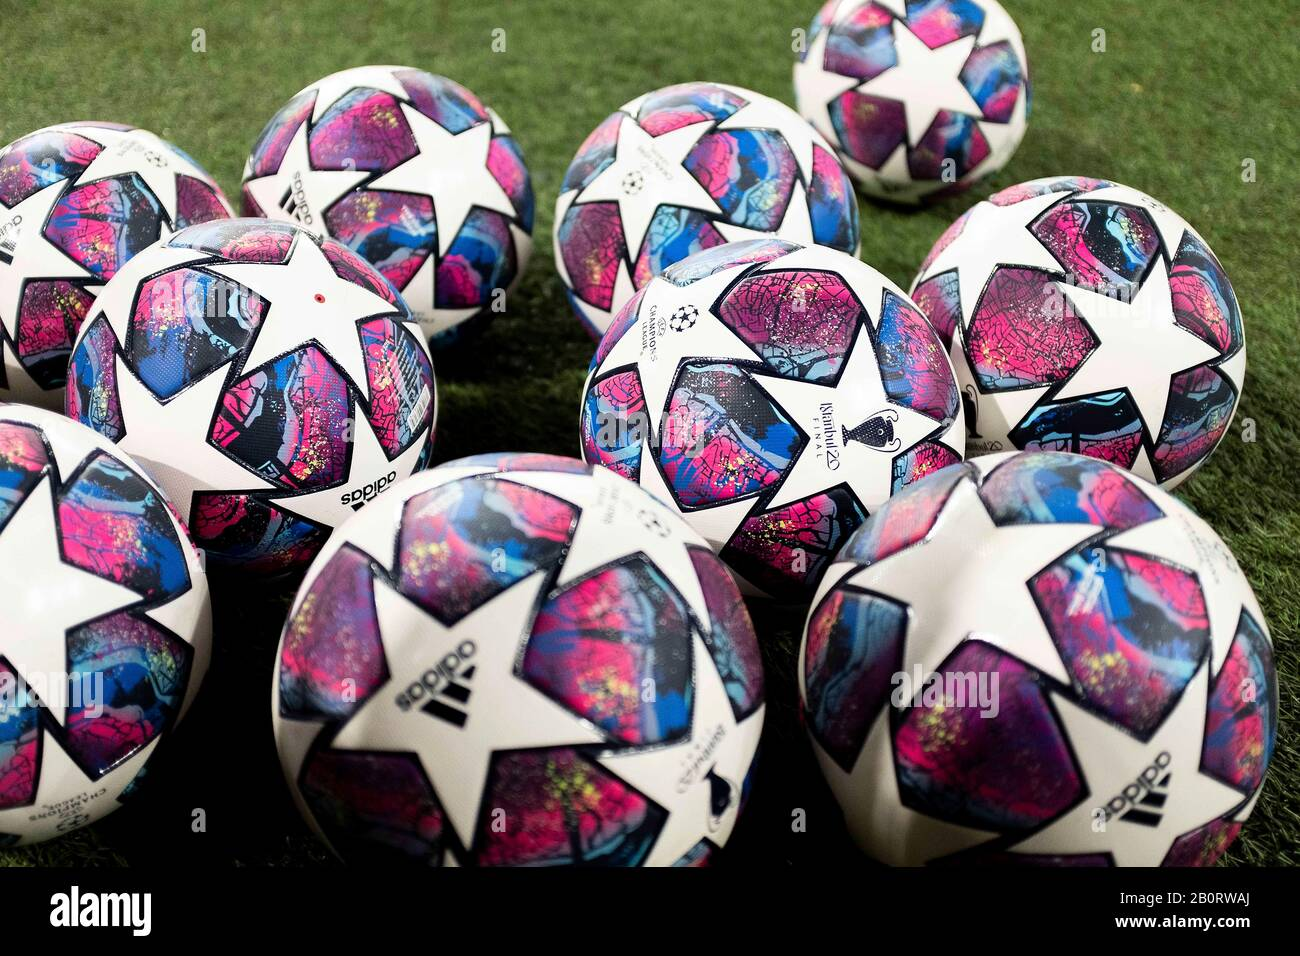 close up of adidas champions league football high resolution stock photography and images alamy alamy